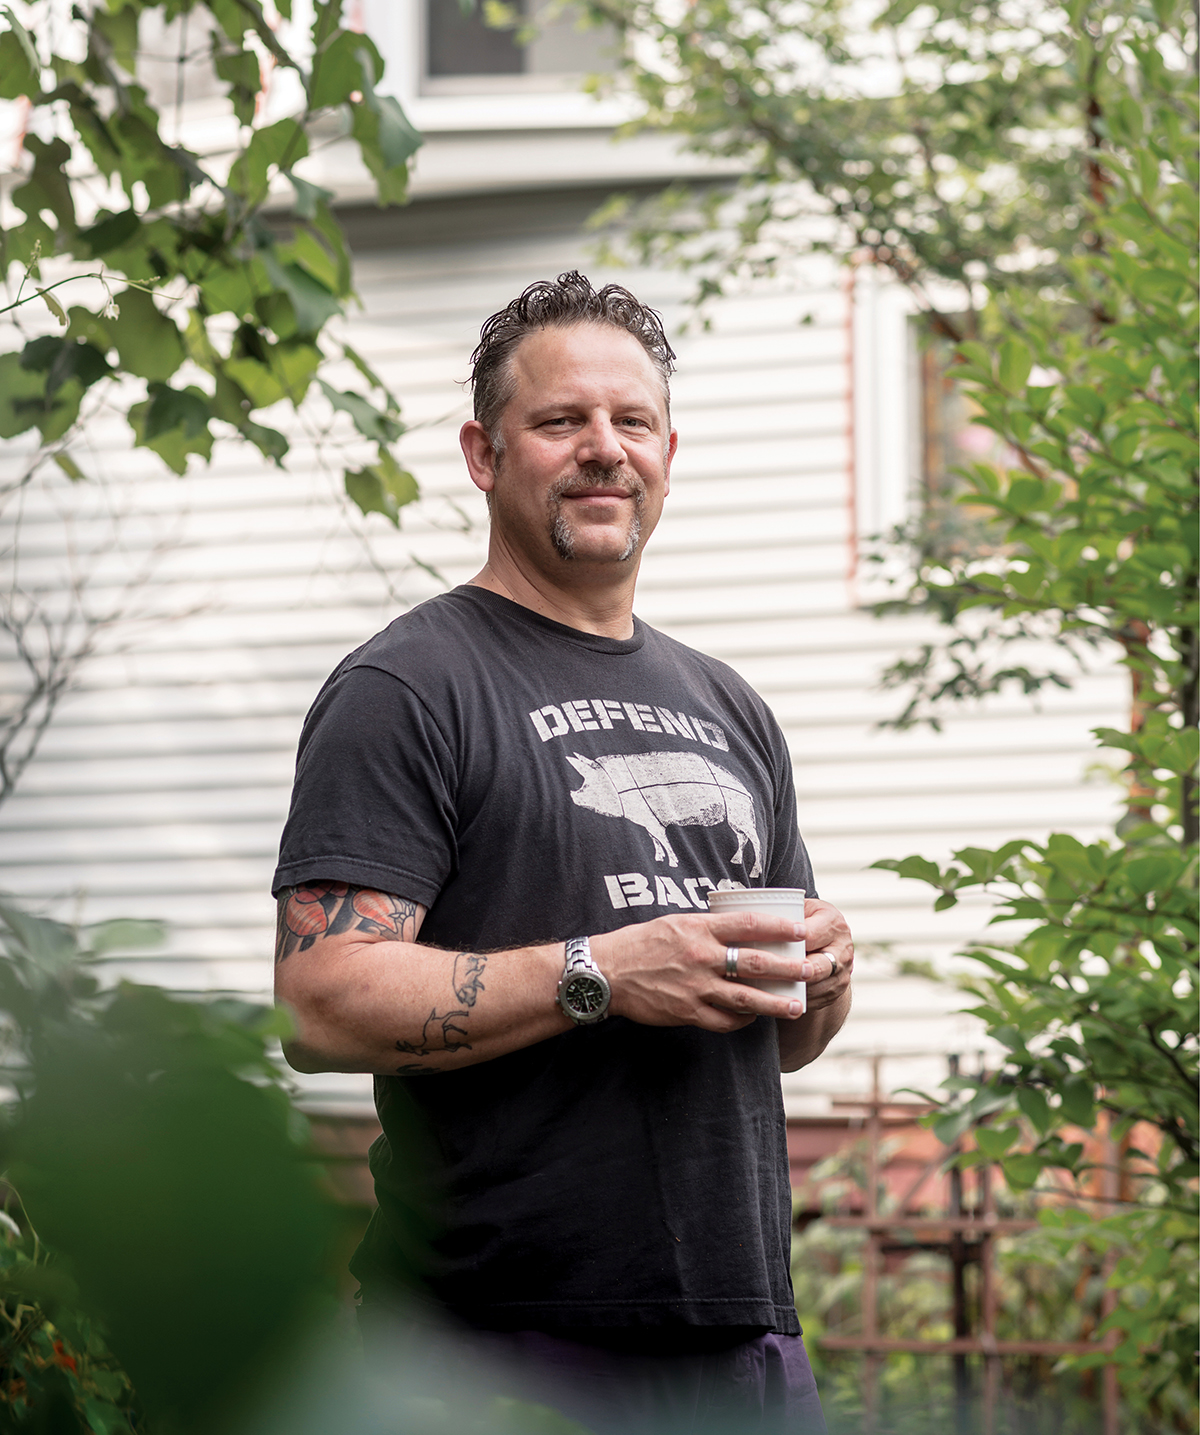 The Smoke Shop BBQ chef and pitmaster Andy Husbands